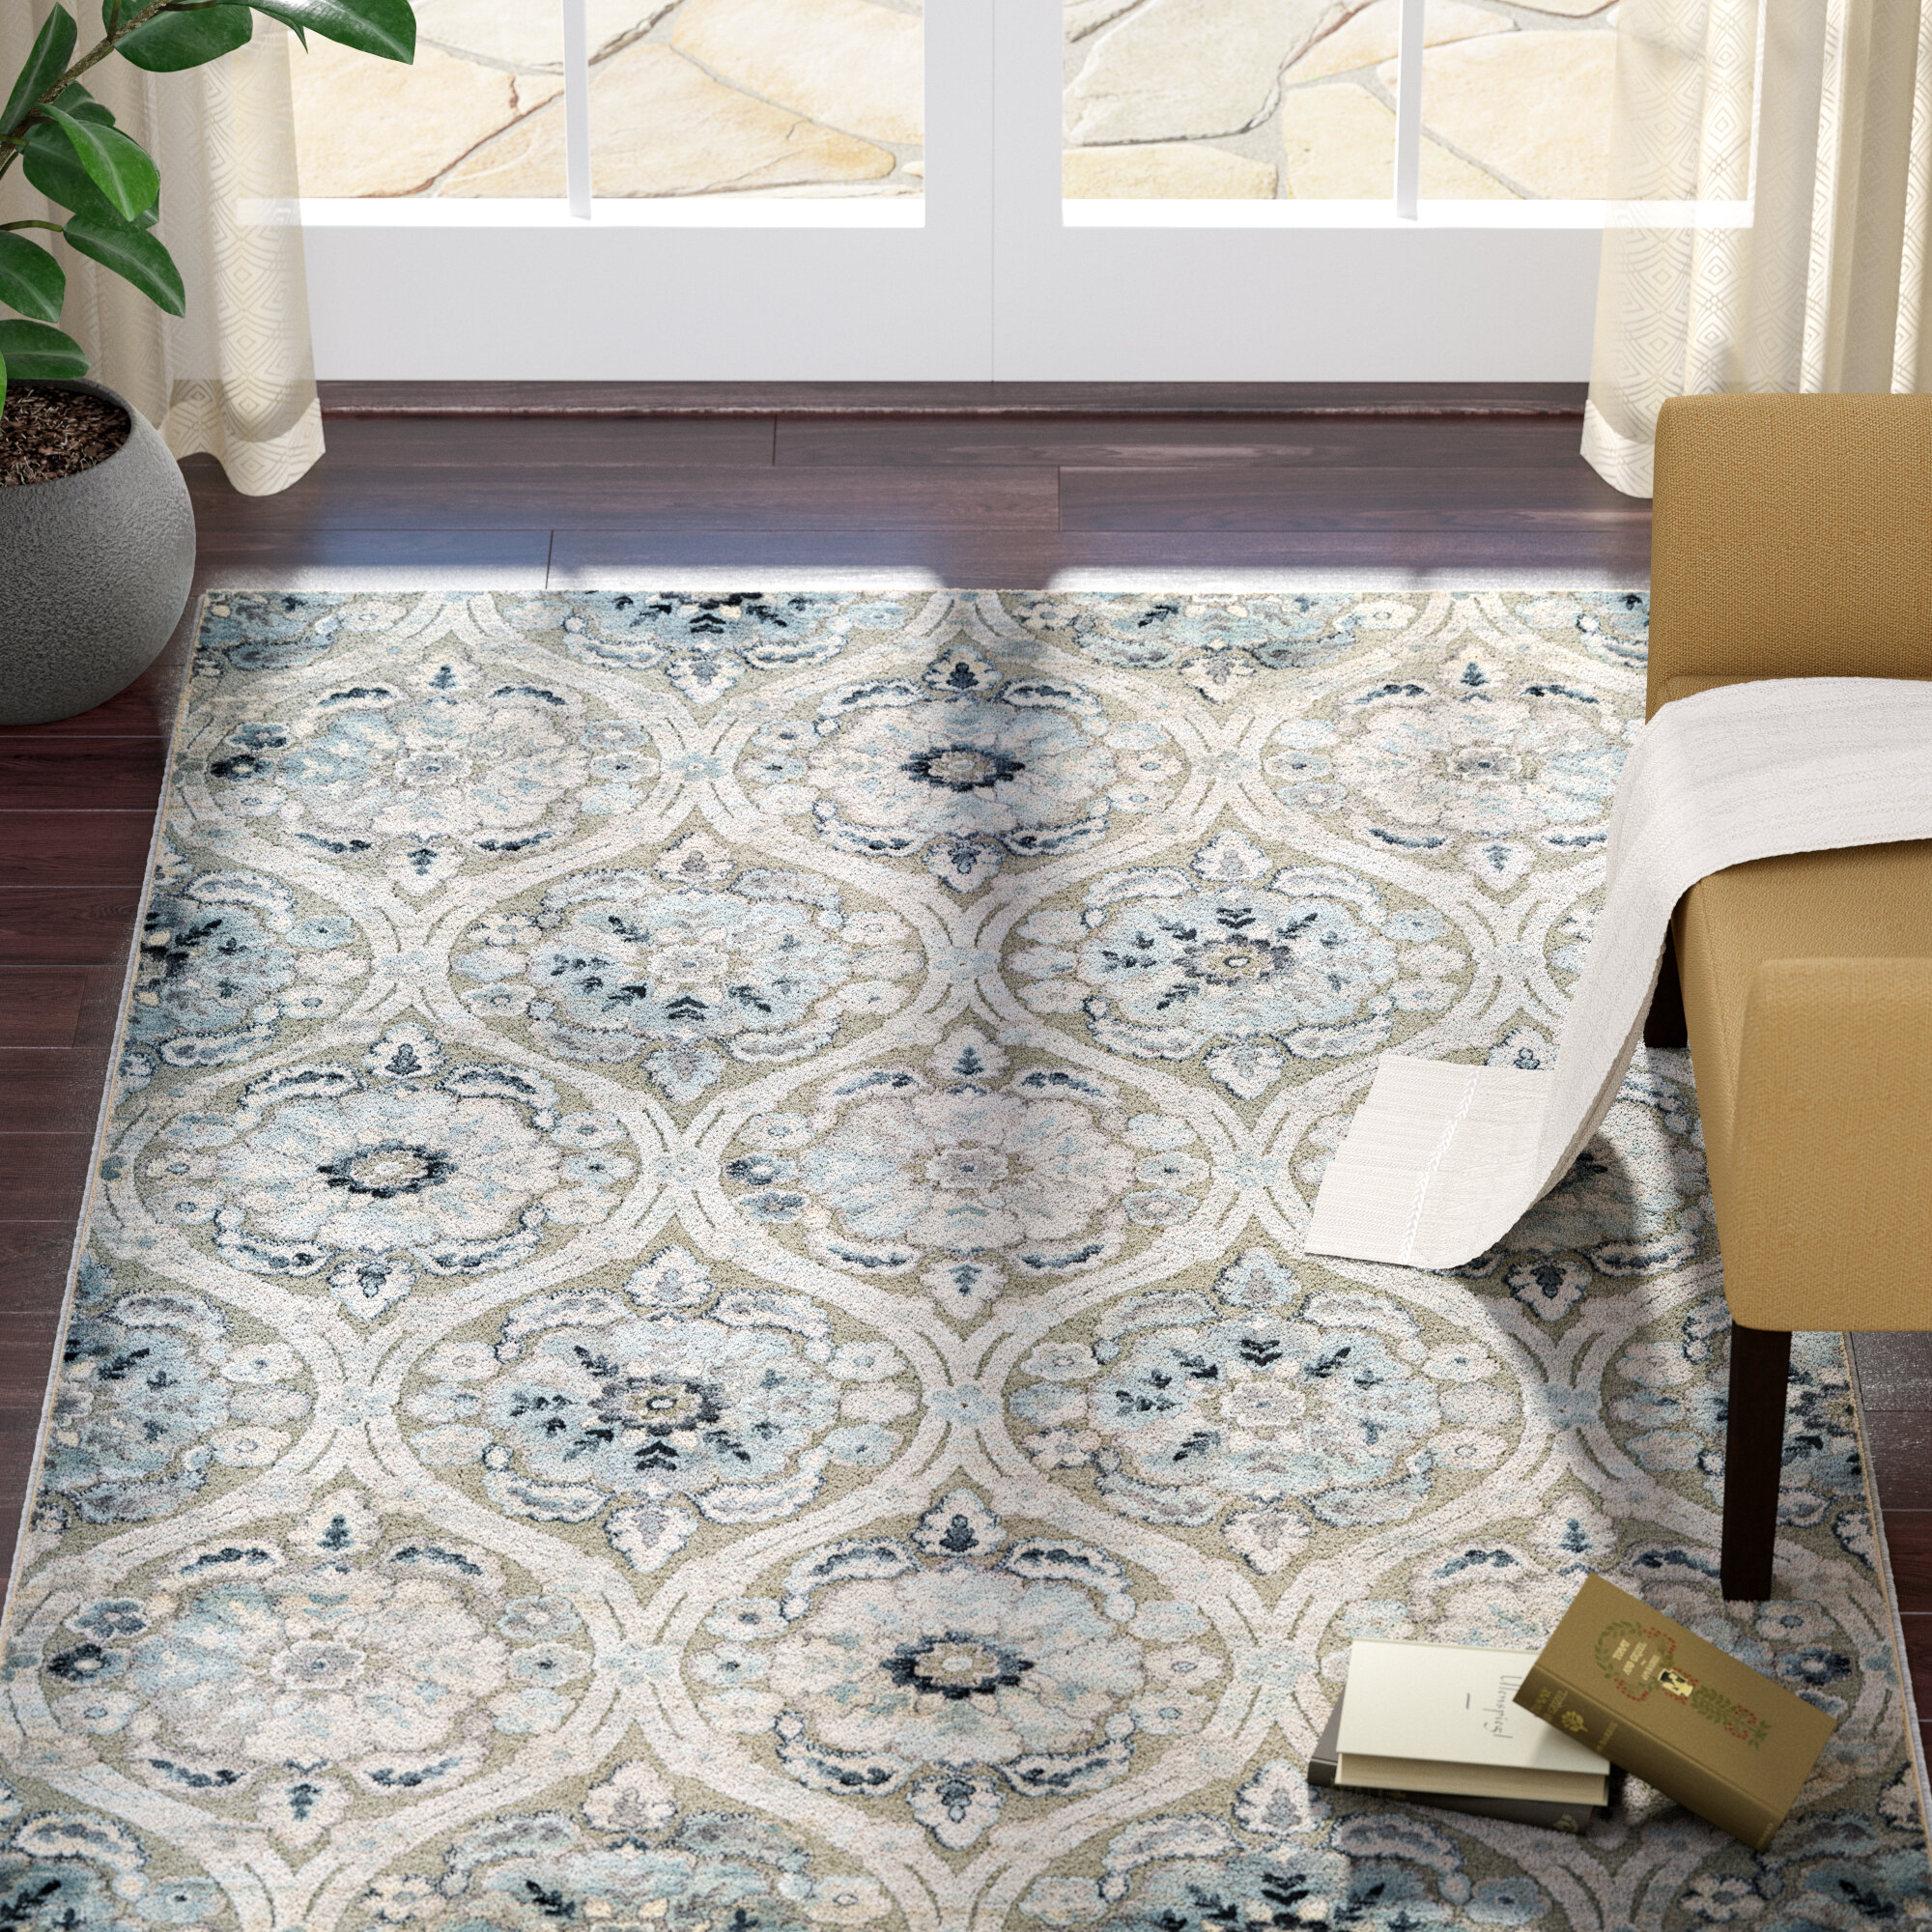 Darby Home Co Walshville Greigeantique Cream Area Rug & Reviews